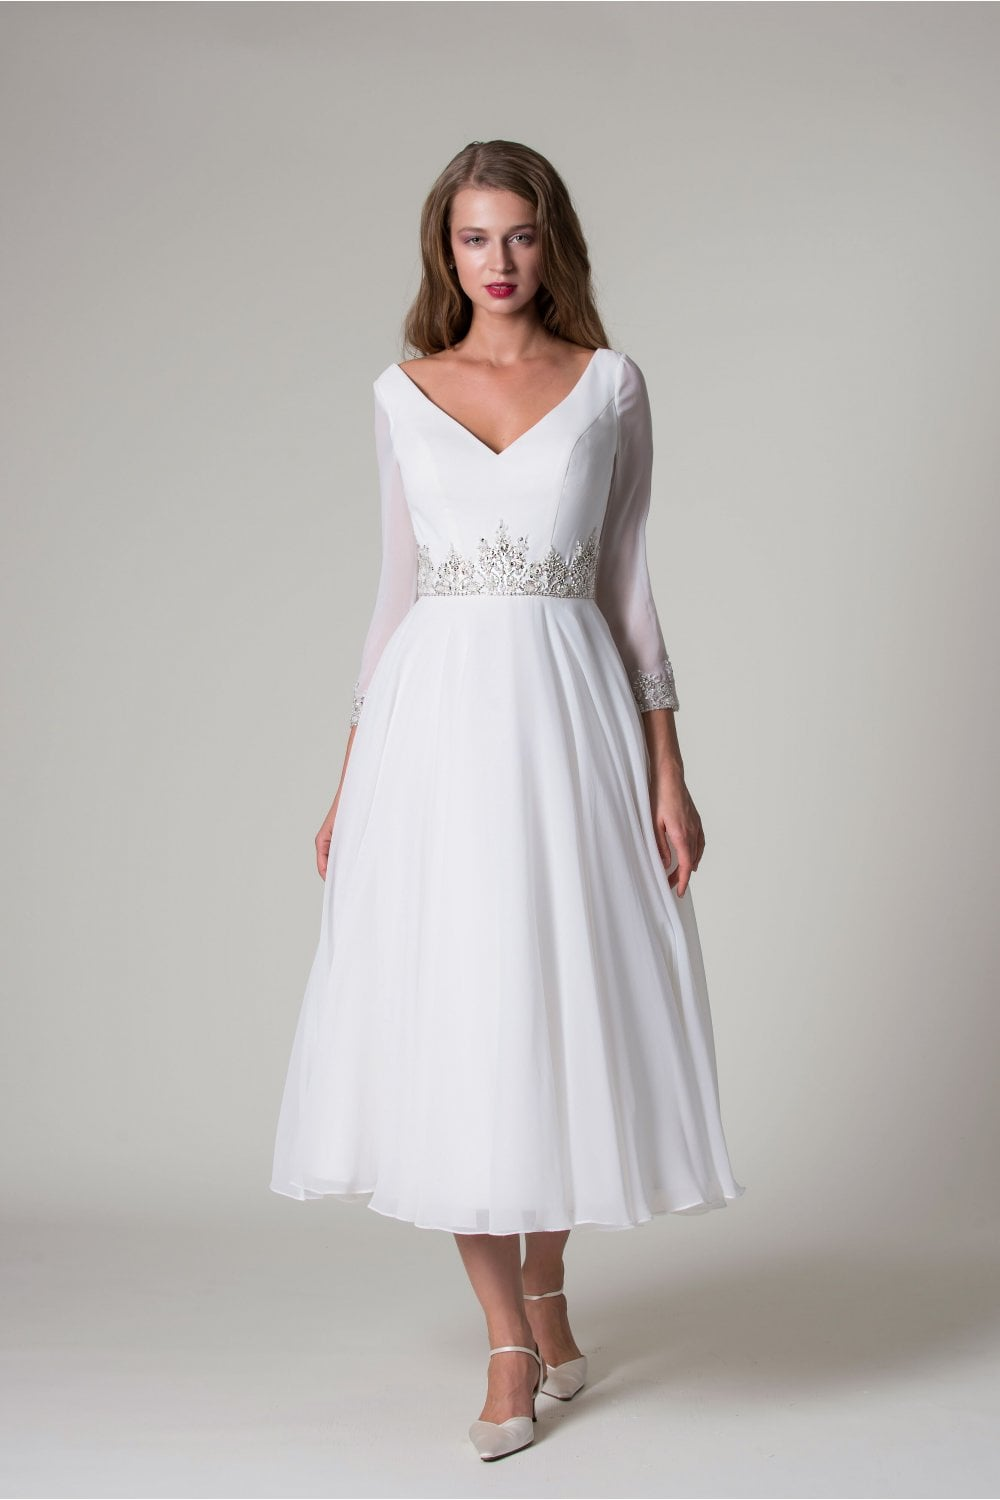 Laia Is A Stylish Long Sleeved Ivory Wedding Dress With A Chiffon Skirt And Sparkle Embellishment